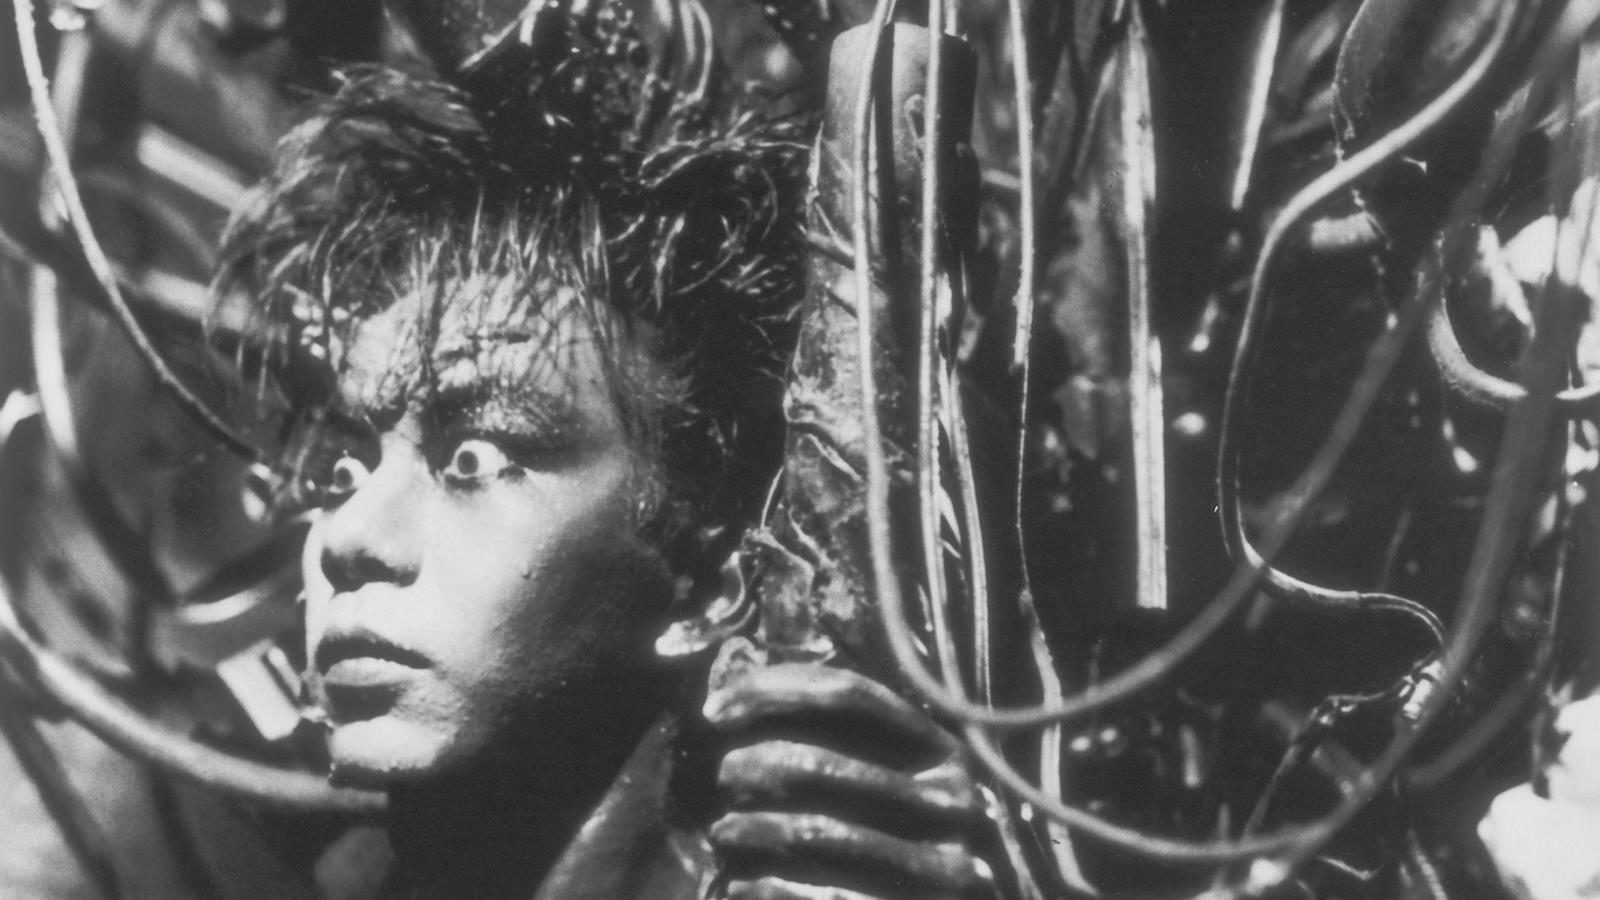 The fusion between man and machine in Tetsuo: The Iron Man (1989)